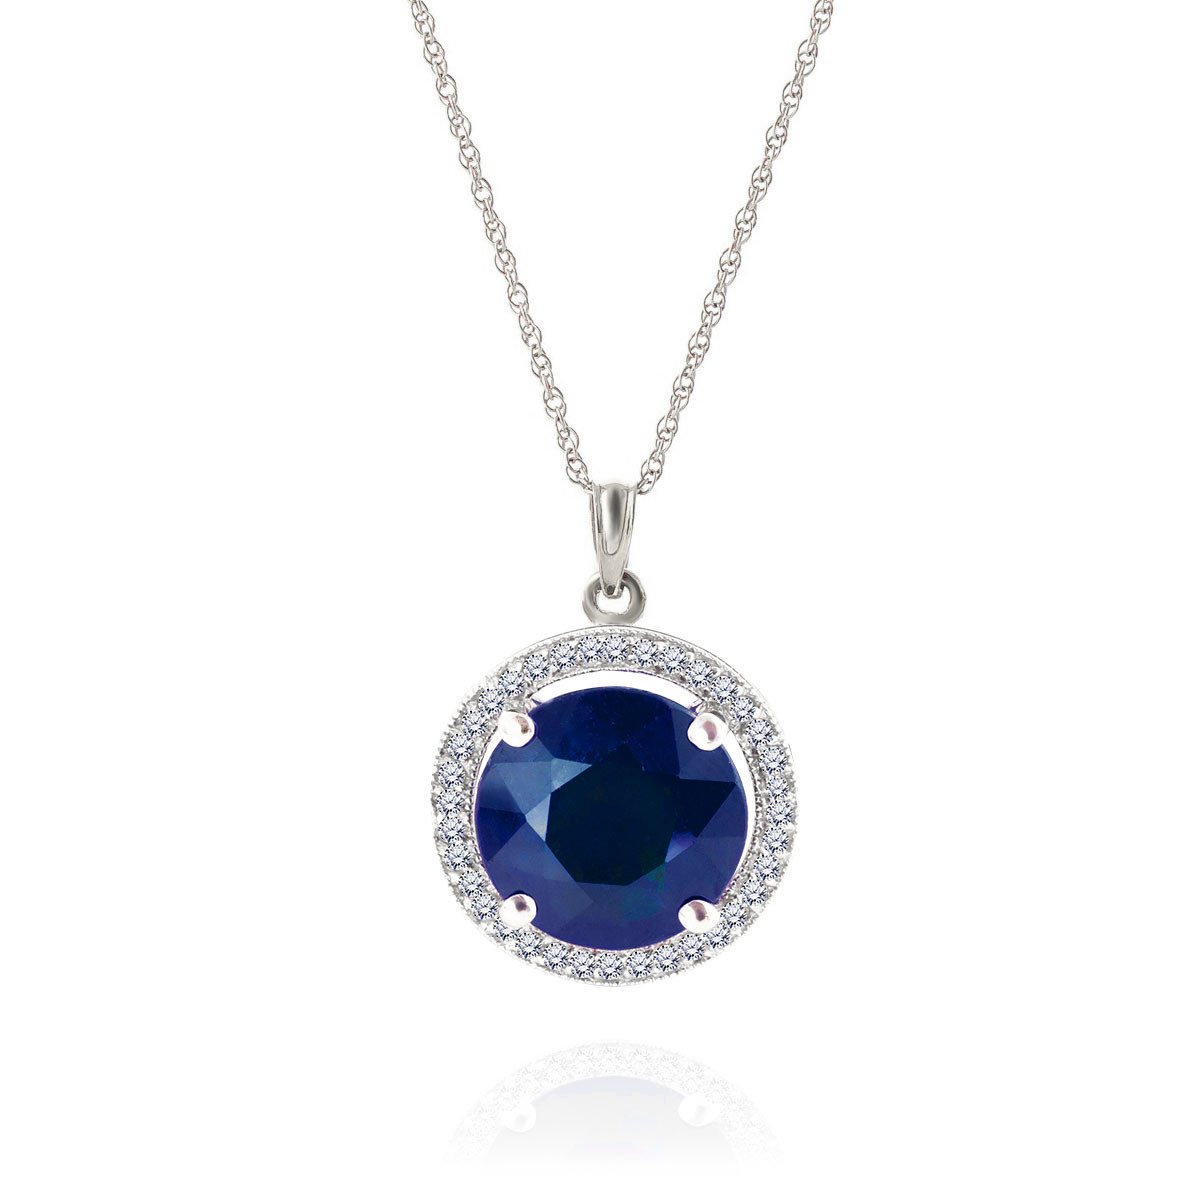 Sapphire & Diamond Halo Pendant Necklace in 9ct White Gold